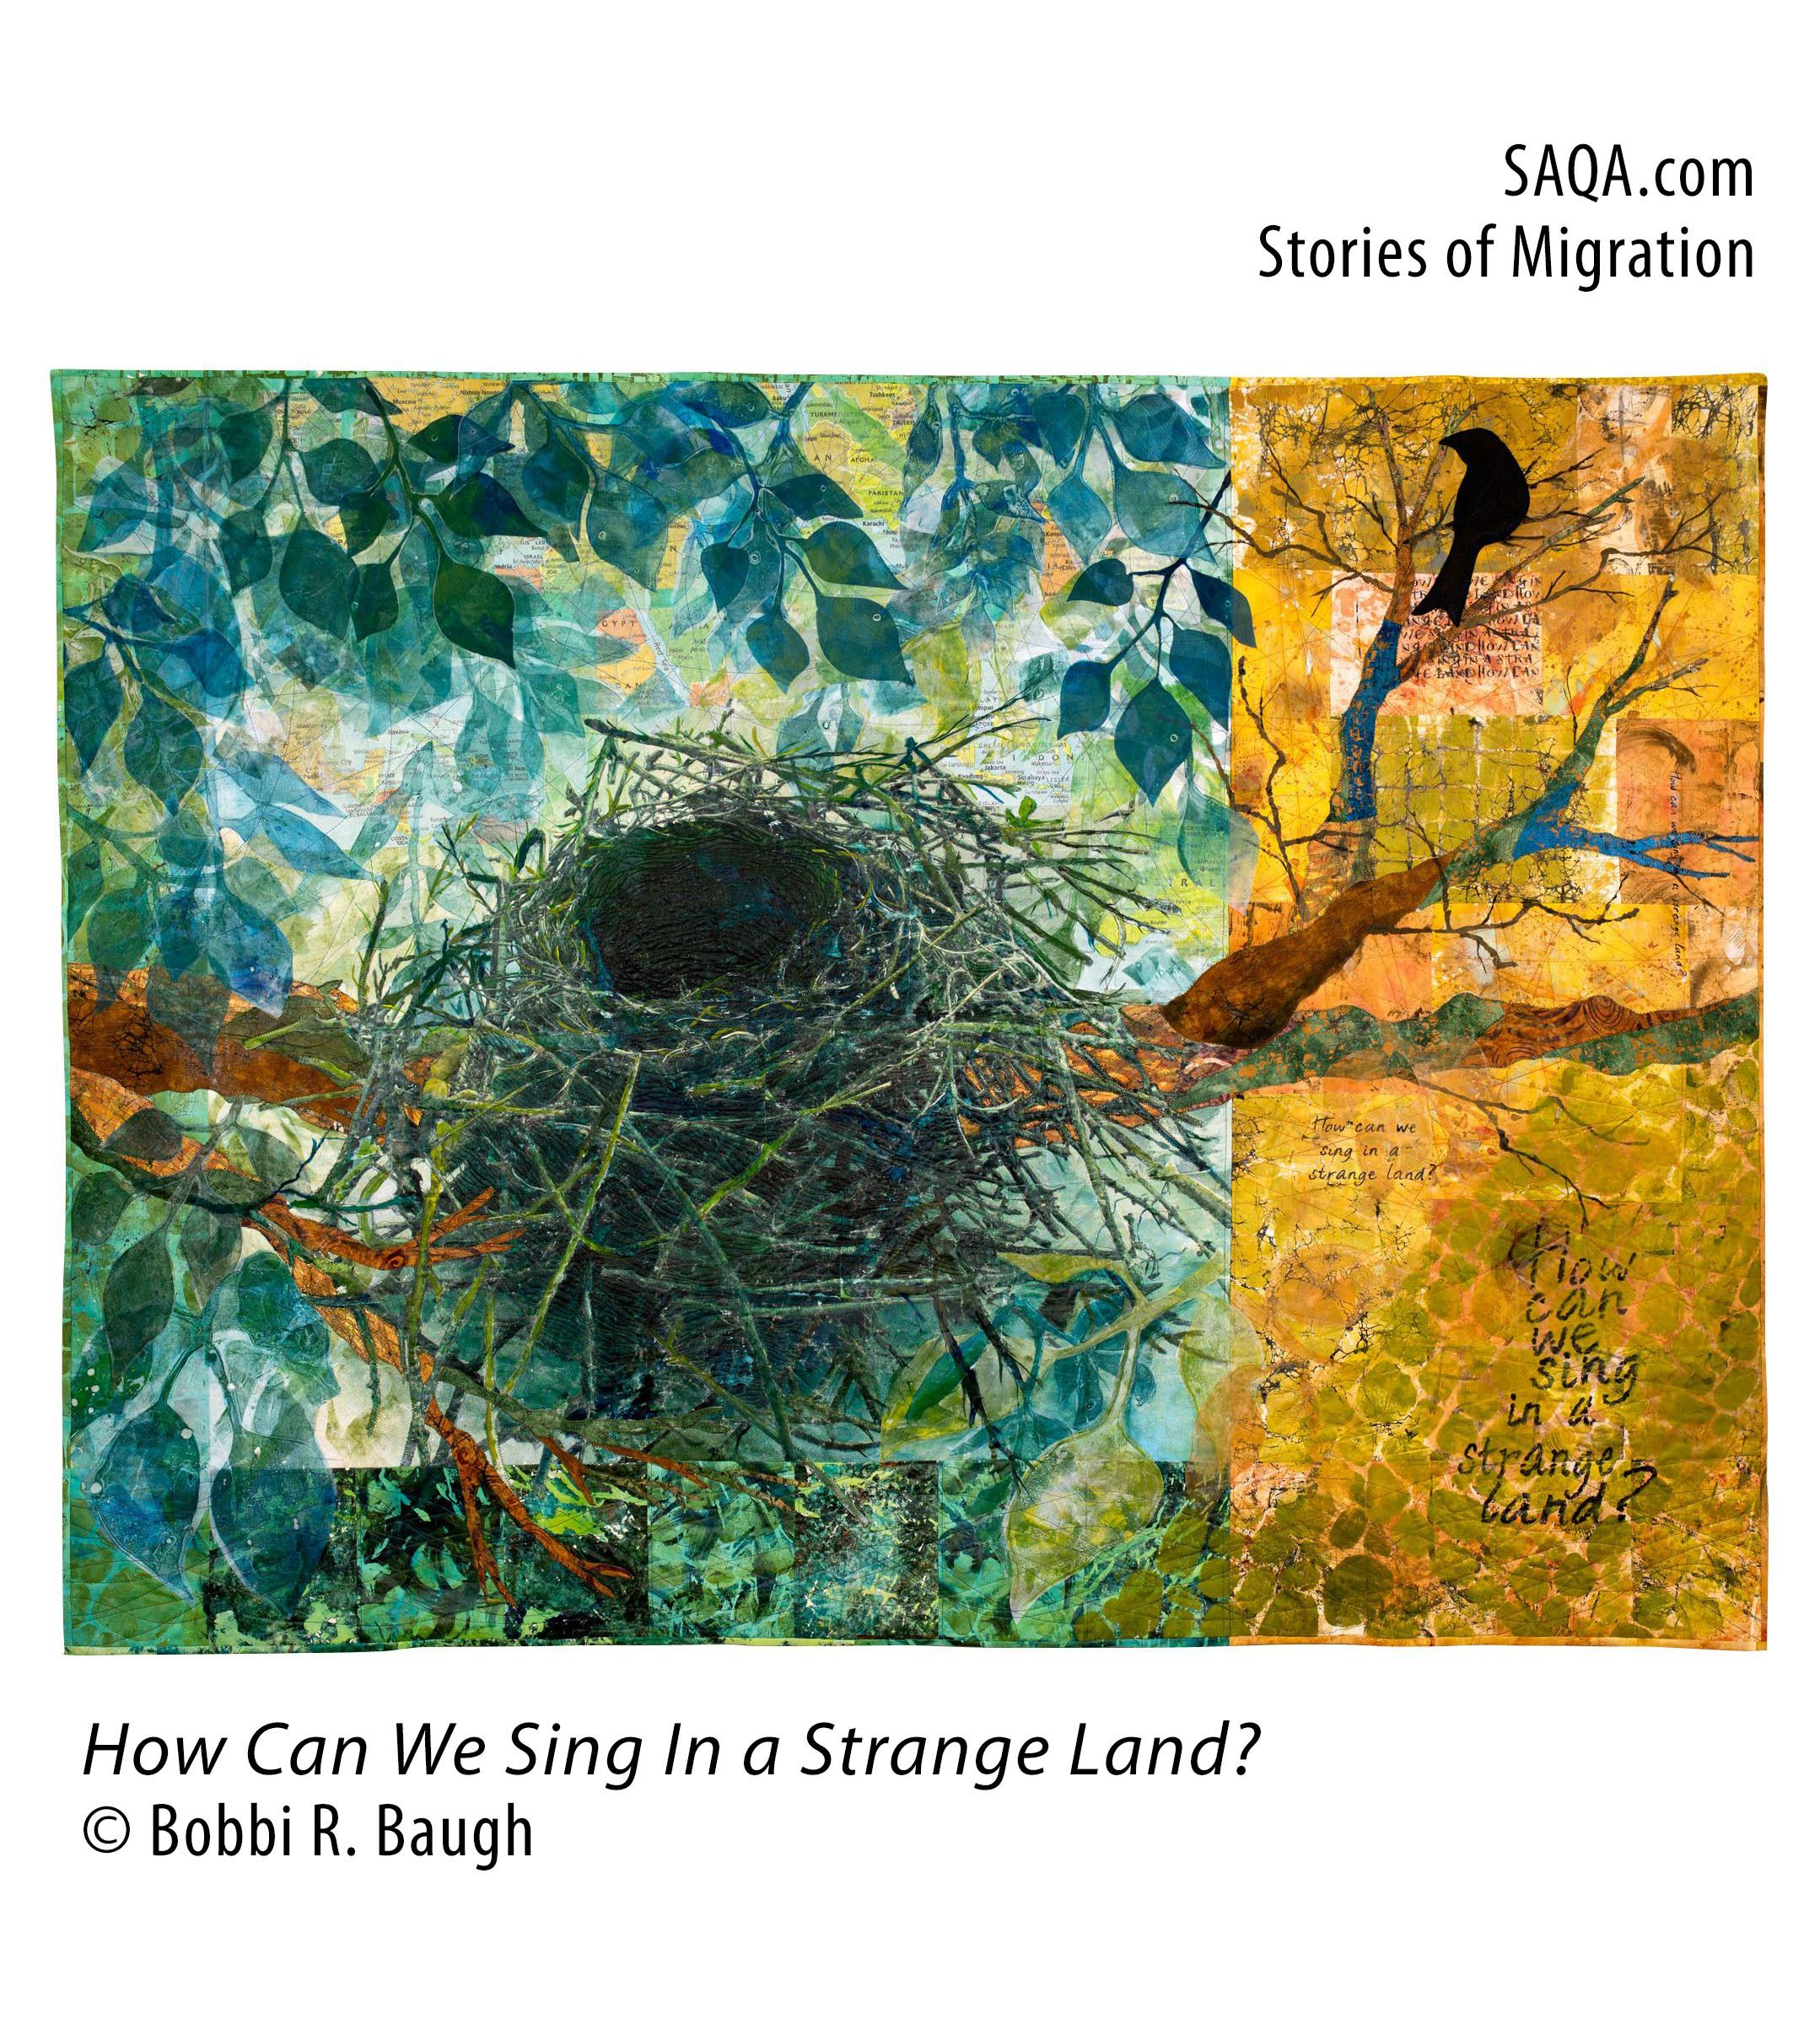 How Can We Sing In a Strange Land?